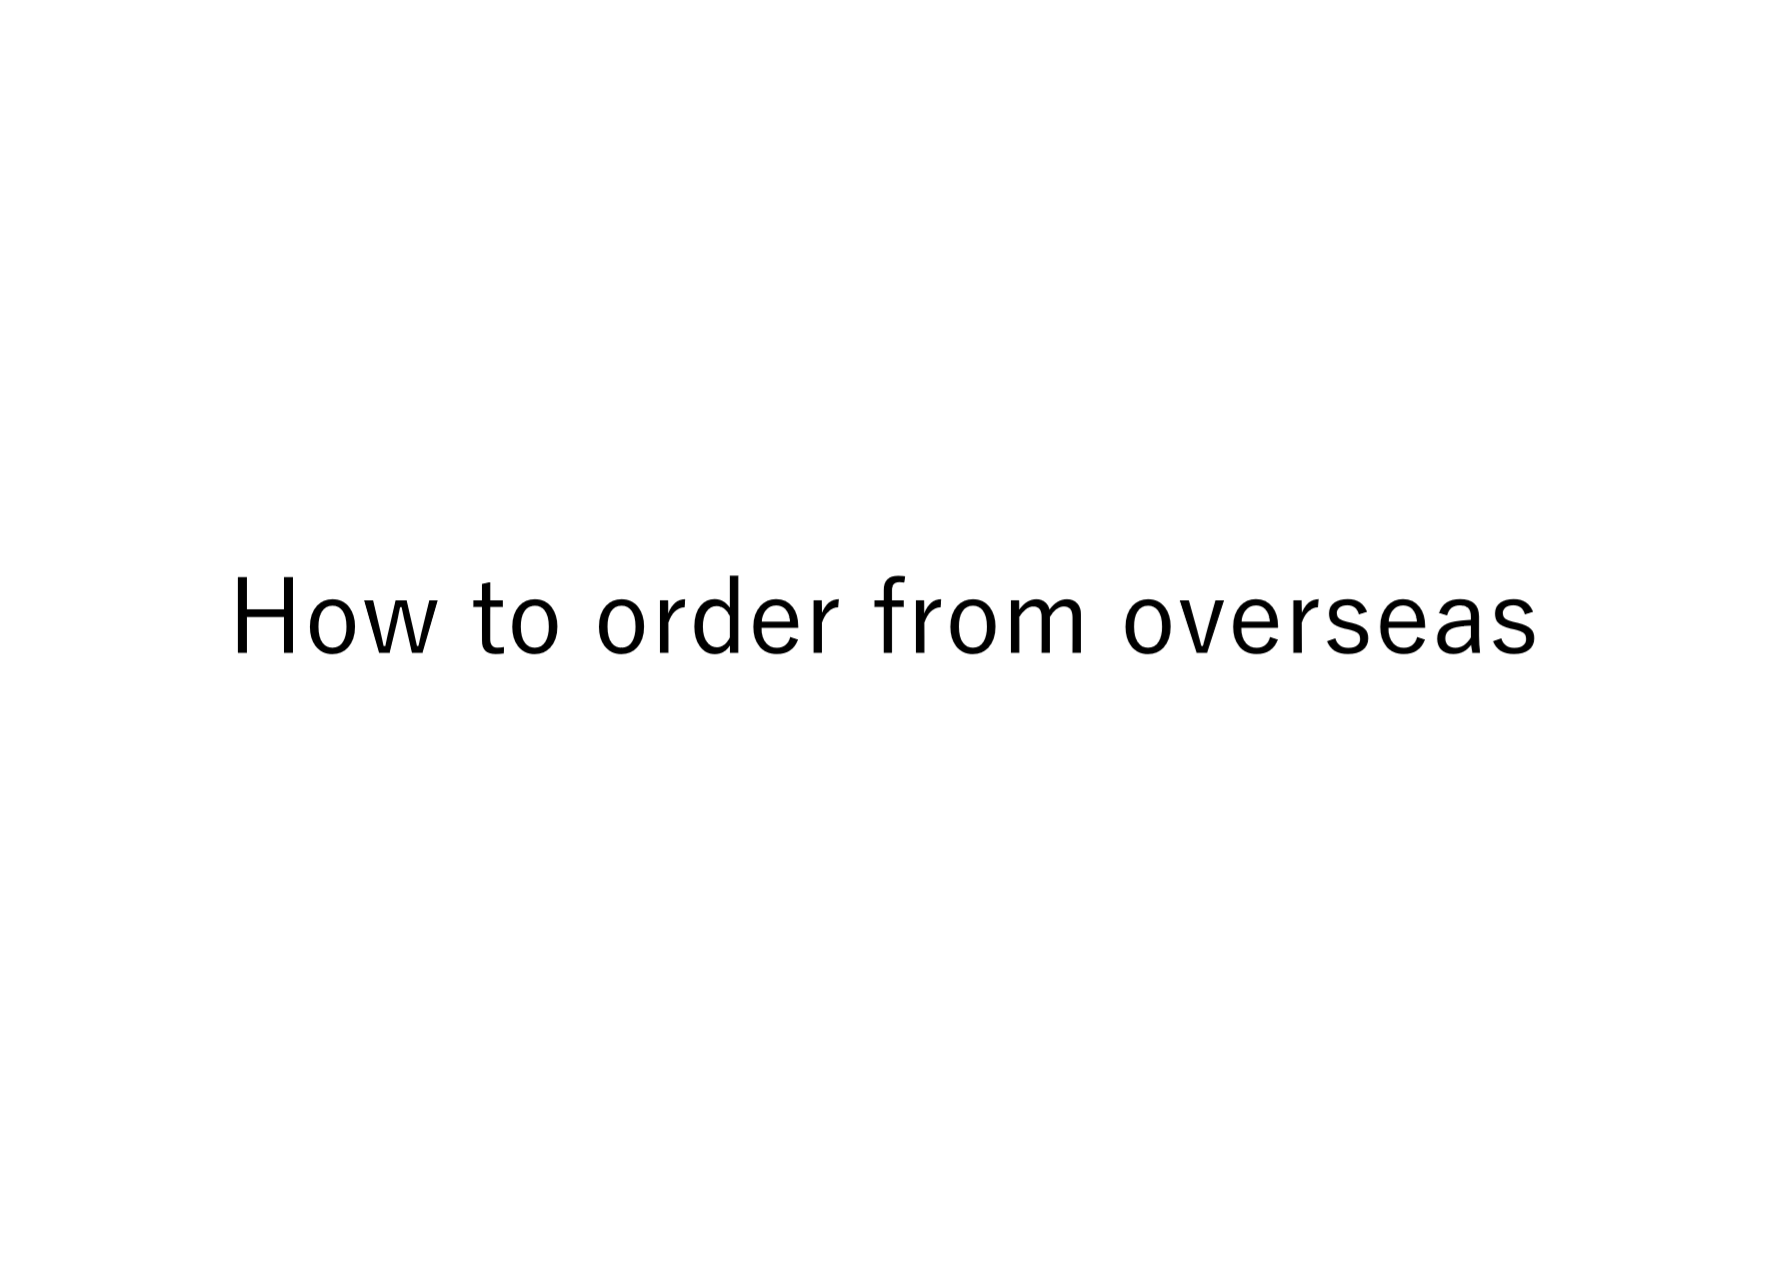 How to order from overseas in the online shop.